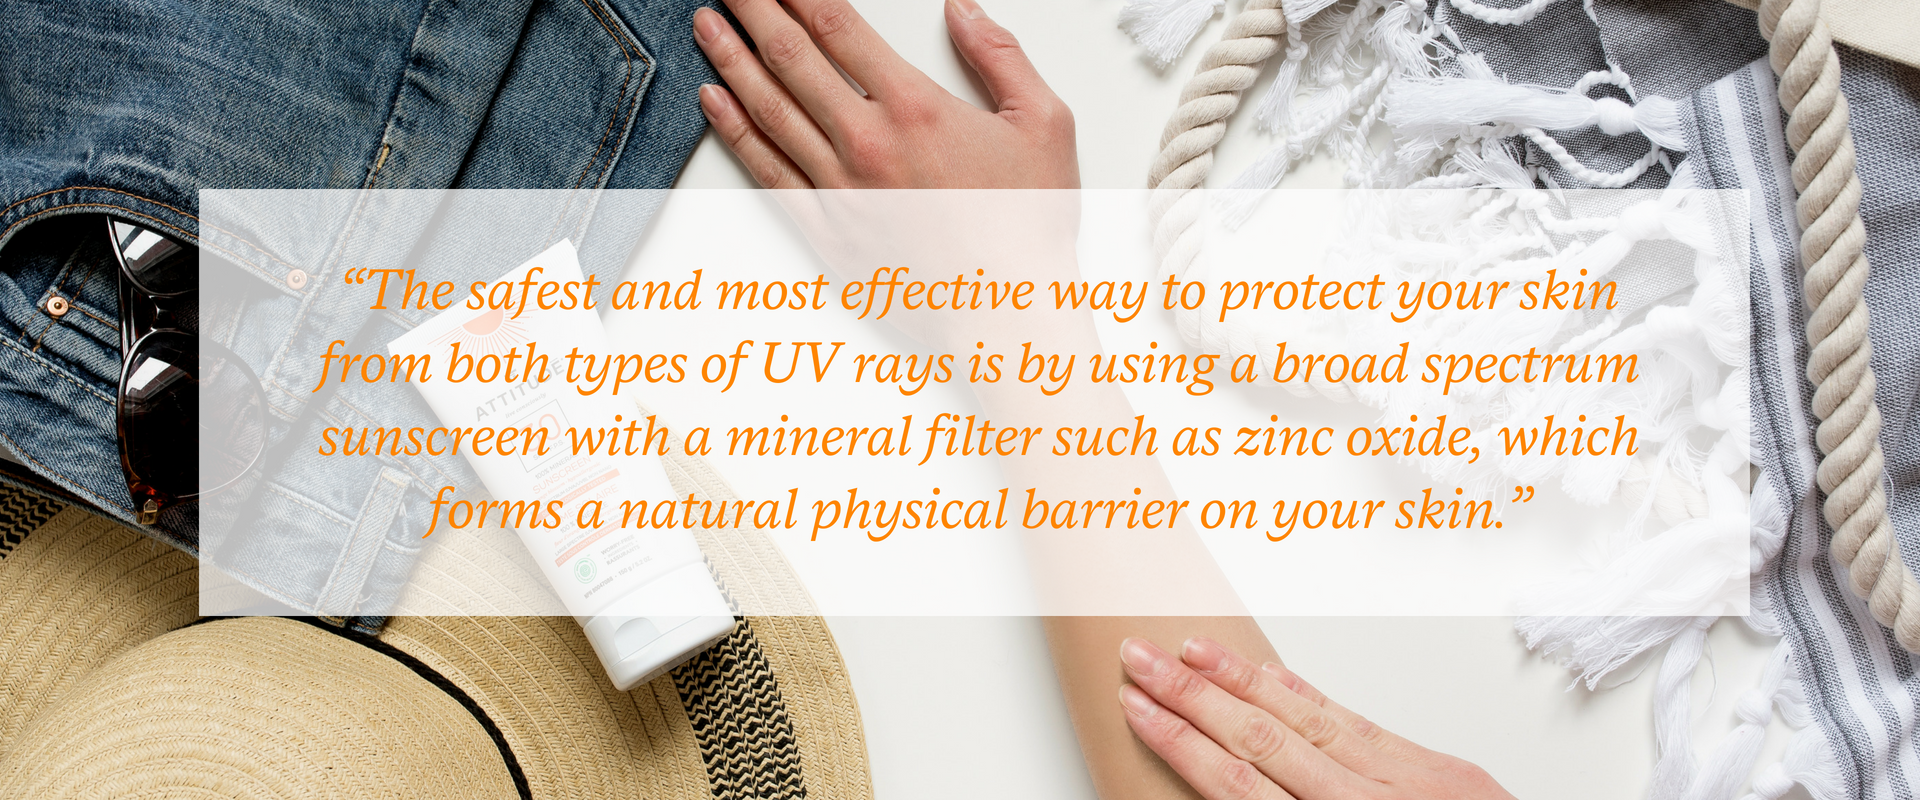 Protection against UVAs and UVBs